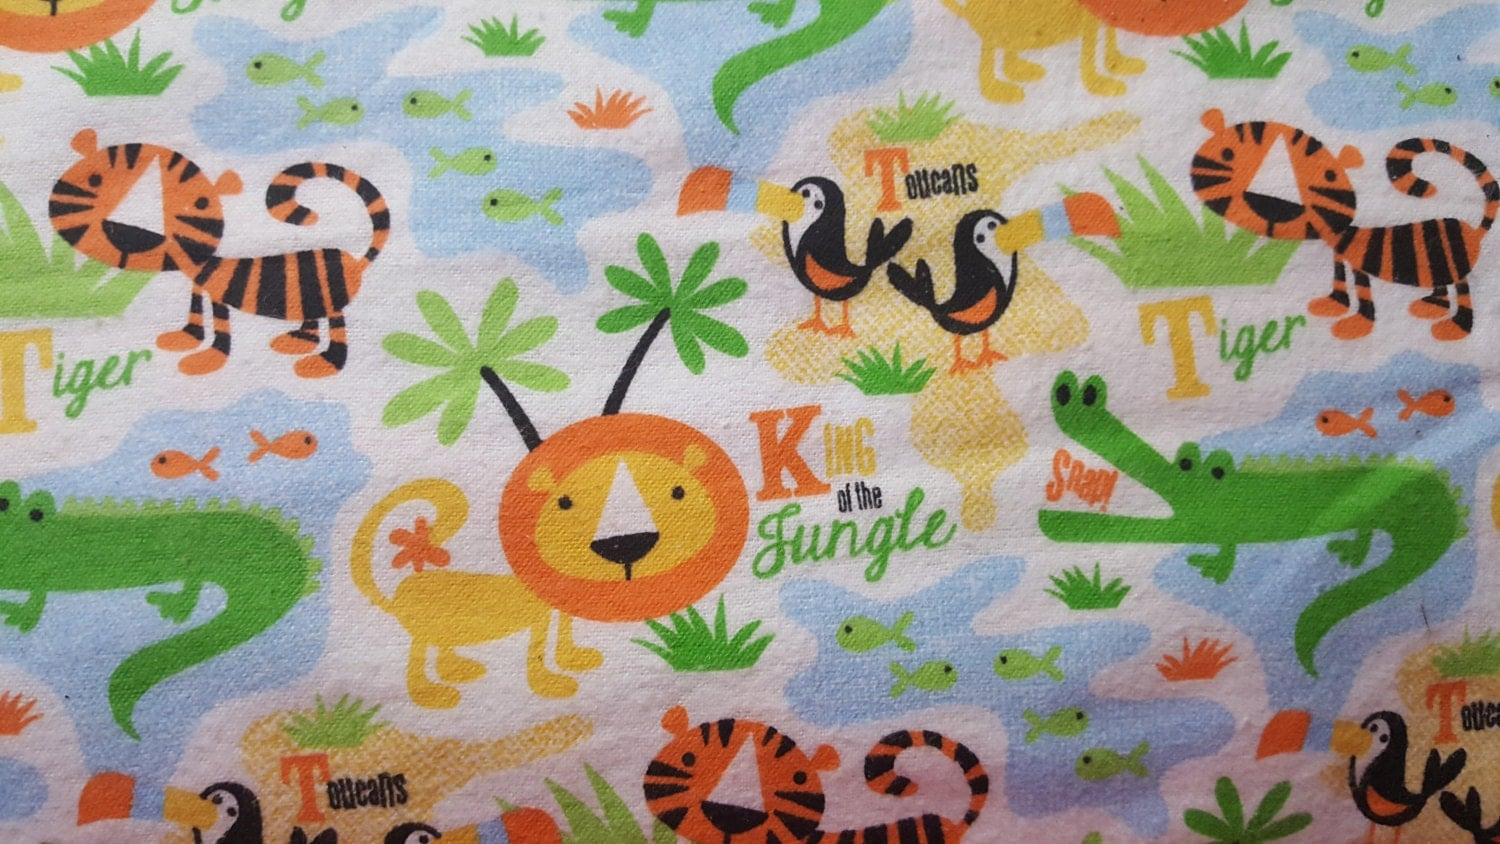 King Of The Jungle Snuggle Flannel Fabric Fabric By The